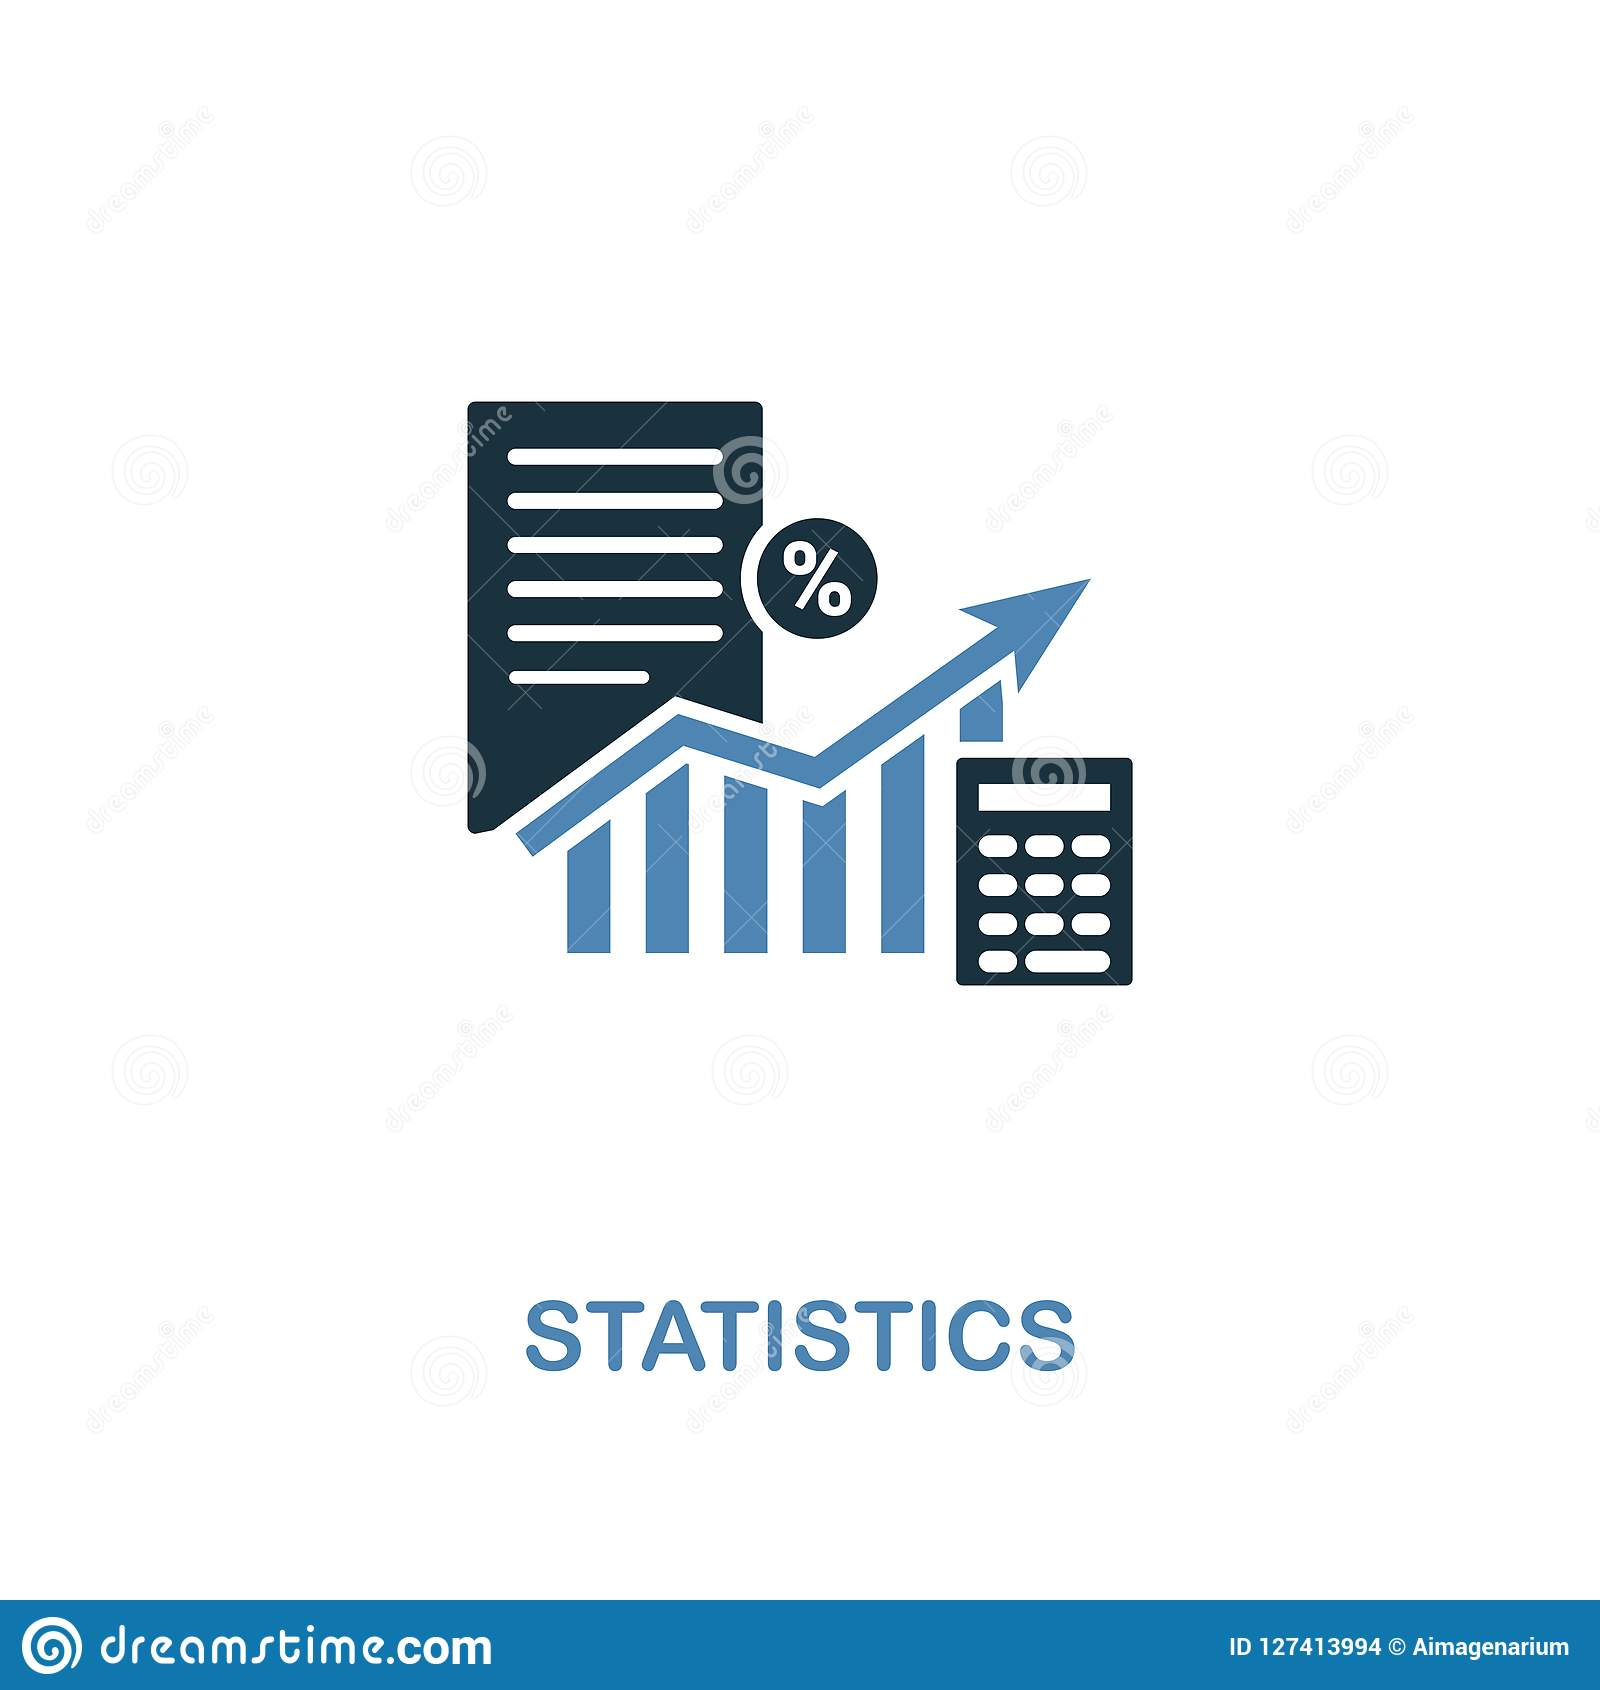 Statistics Icon In Two Colors  Creative Design From Online